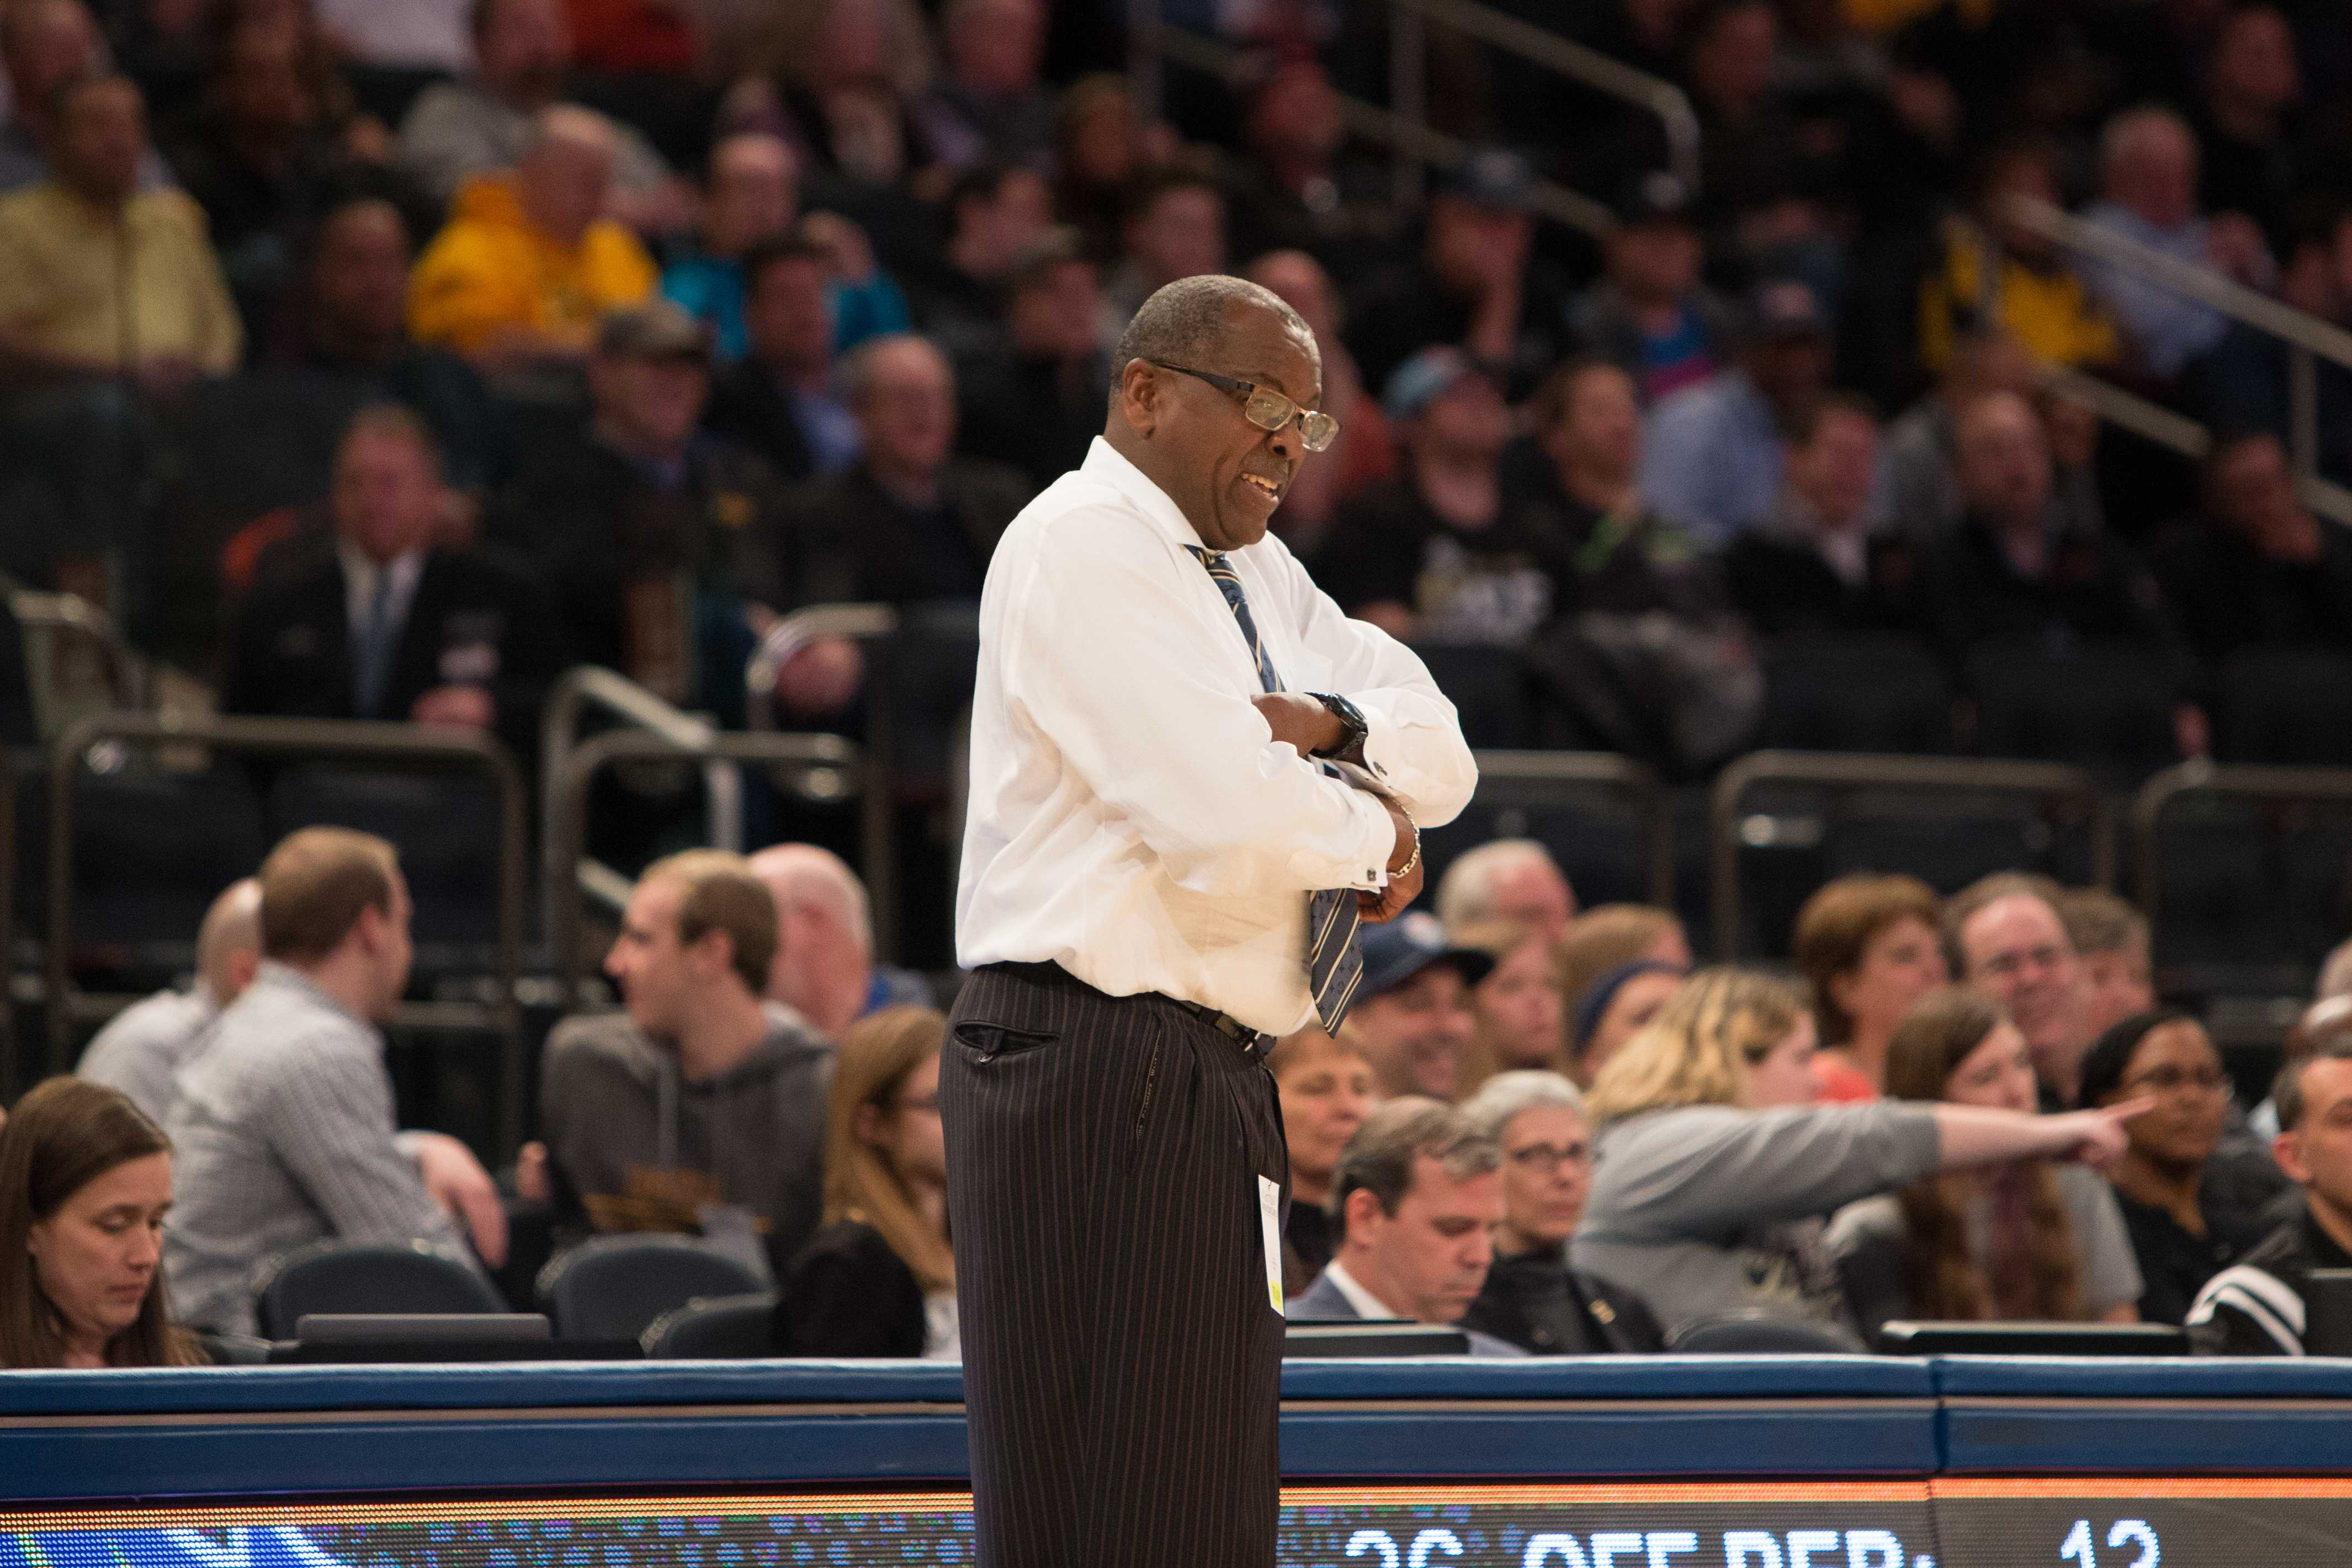 CSUB head coach Rod Barnes looks on as the Roadrunners fall to Georgia Tech in the NIT semifinals in Madison Square Garden. This was the first time an eighth seed has made it to New York City in the history of the NIT. Photo by AJ Alvarado/The Runner